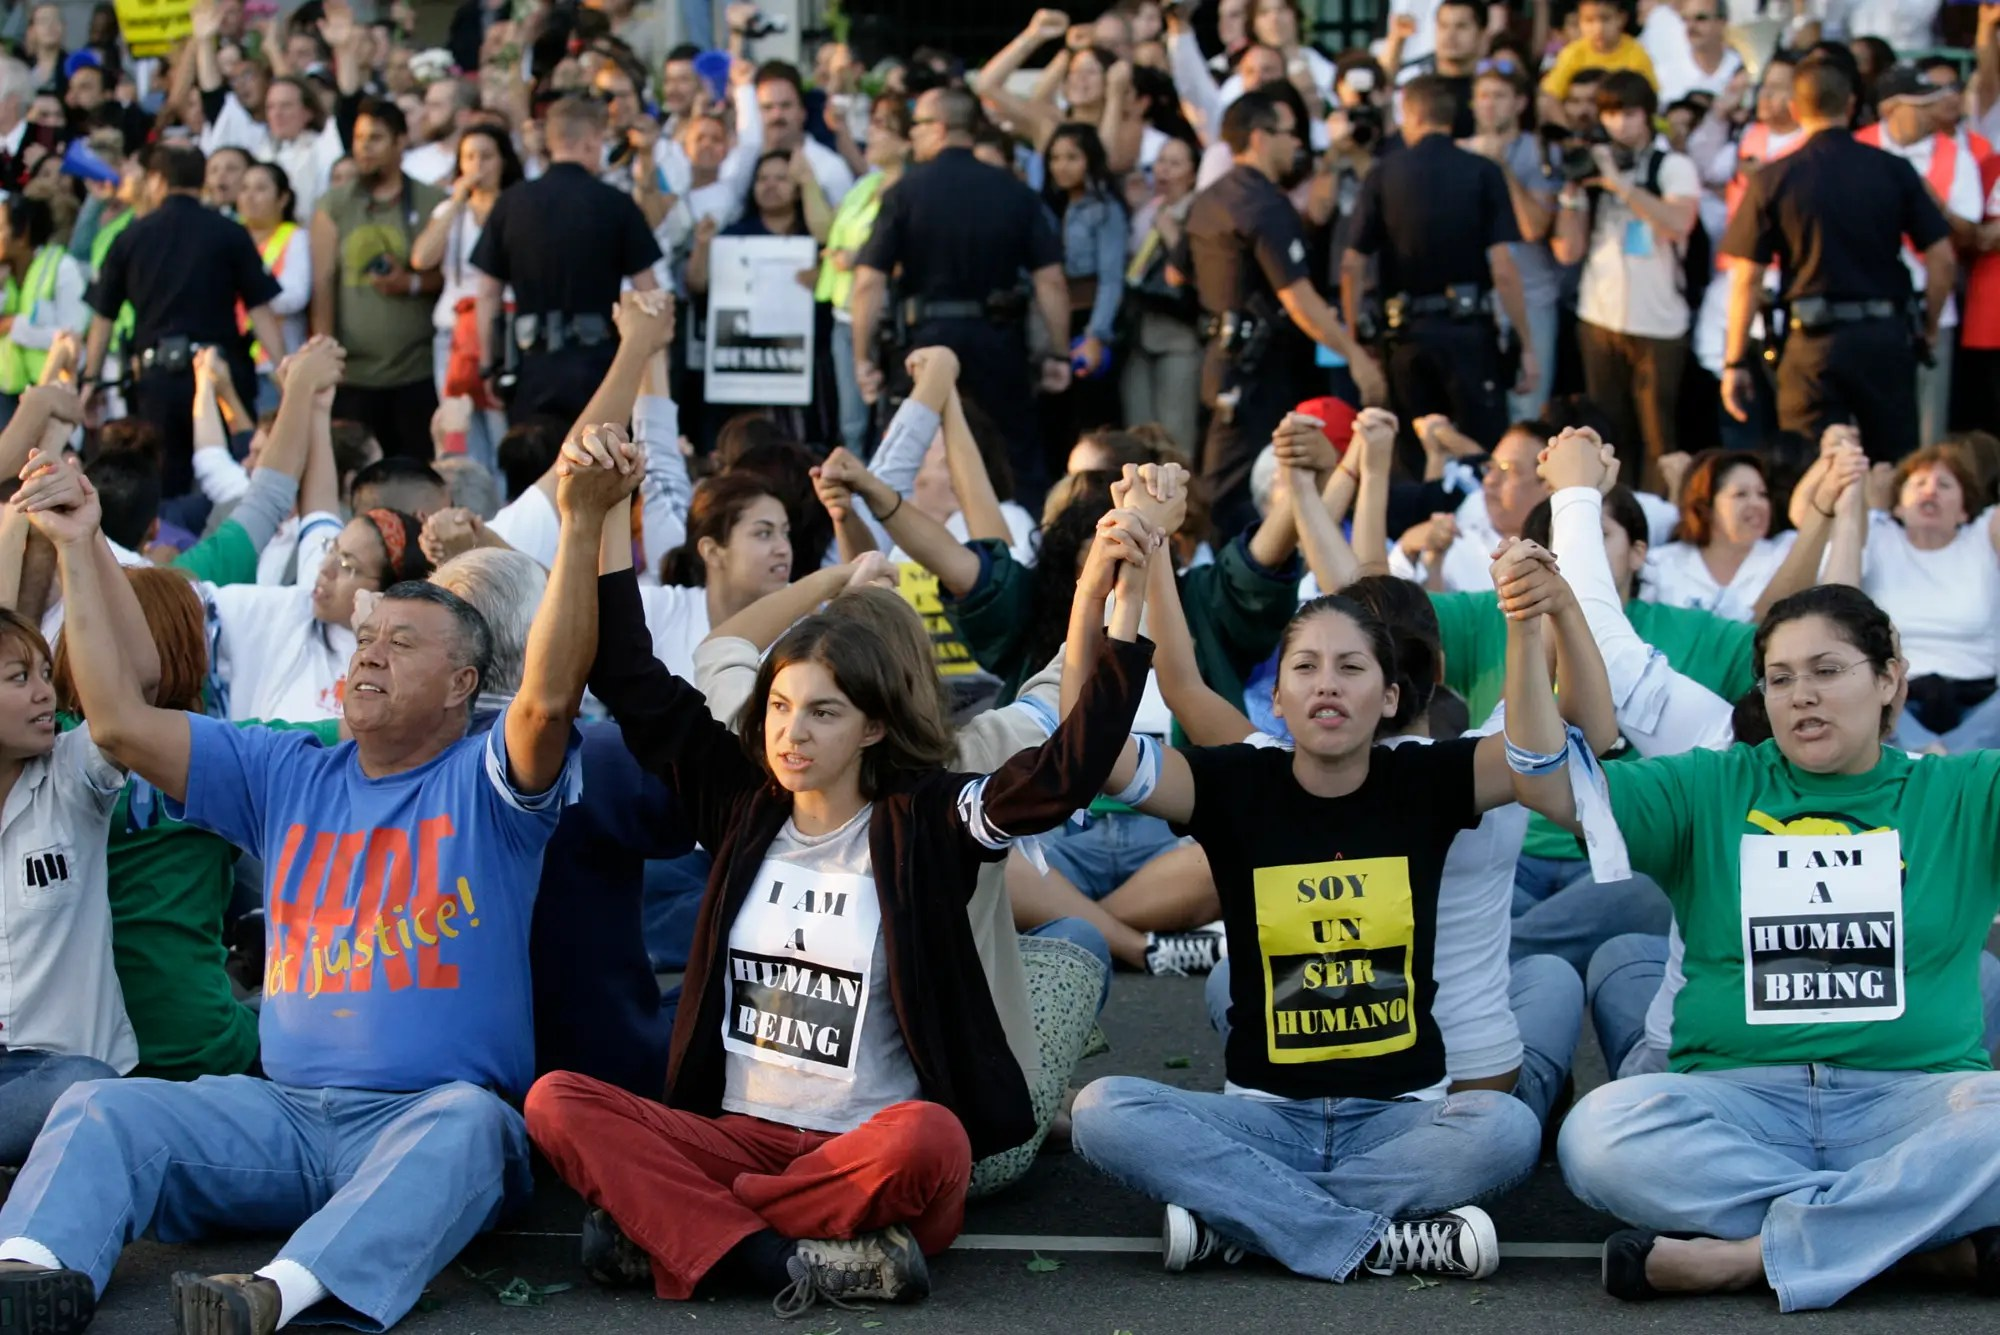 Protests related to immigrant rights grew in the early 2000s. In 2006, hundreds of thousands of people protested against anti-immigration legislation in cities around the US, including Los Angeles and Chicago.